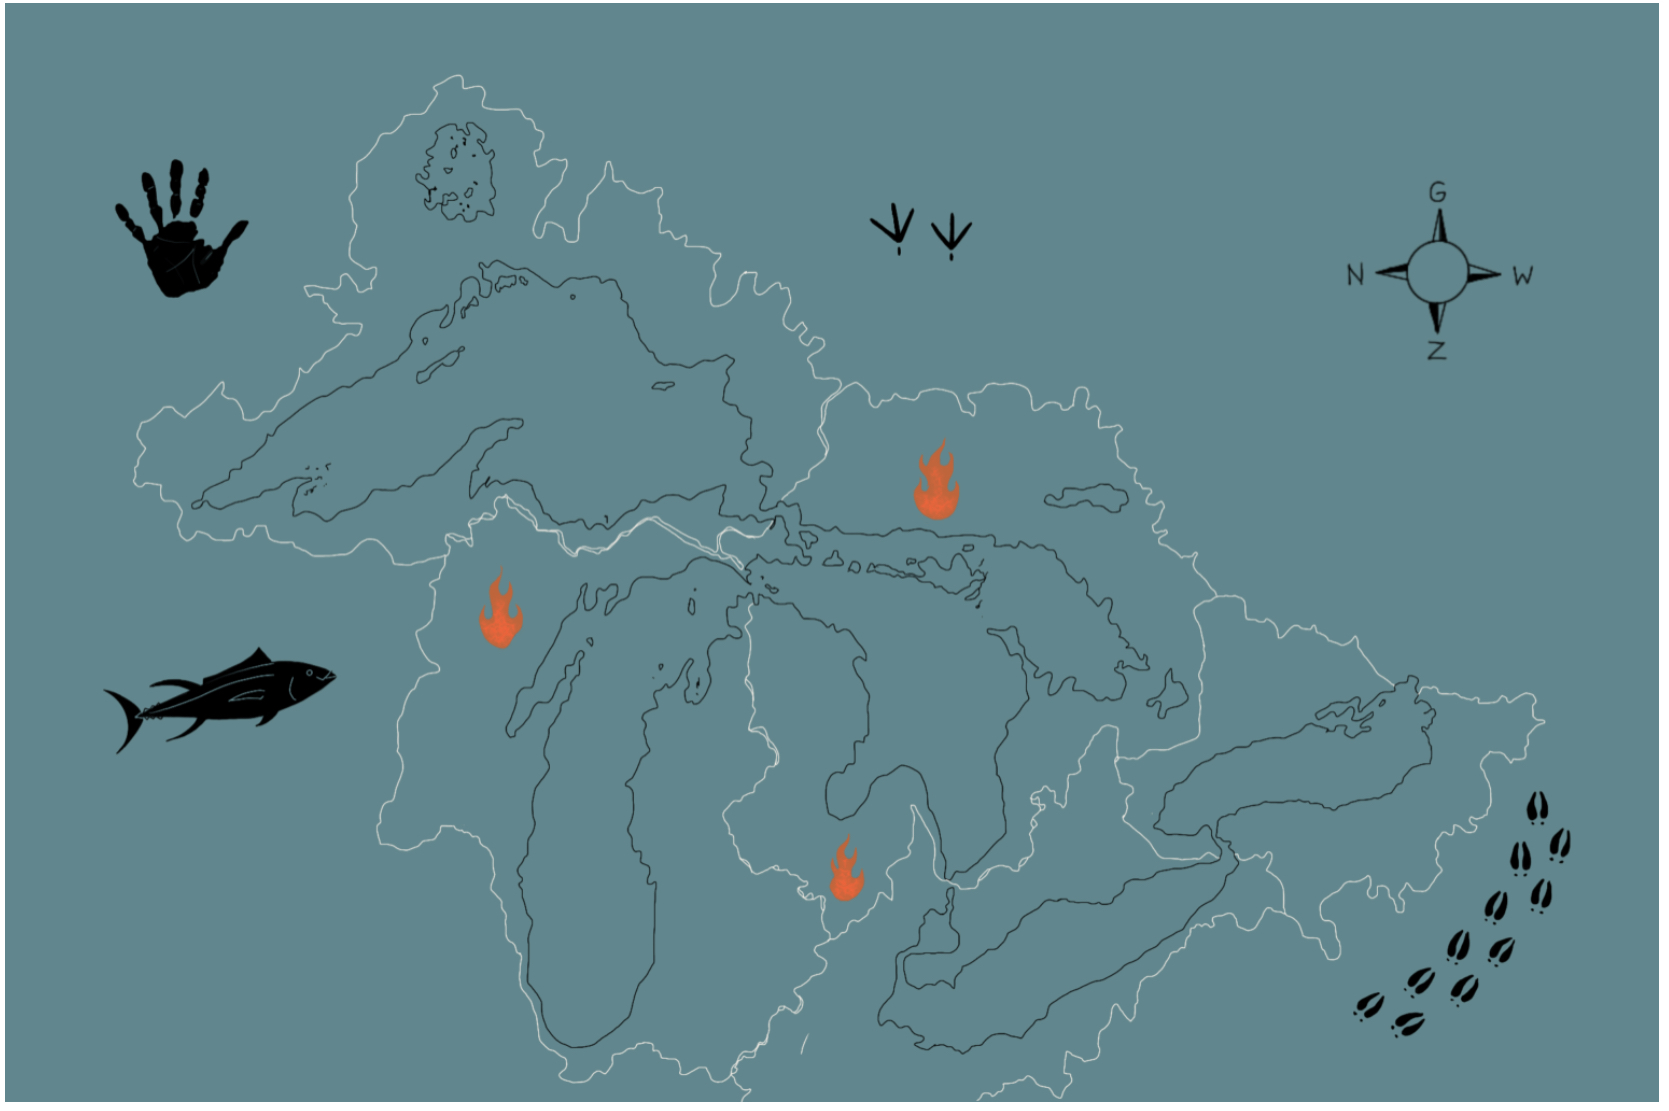 Indigenous Mapping Workshop Encourages Sovereignty through Cartography